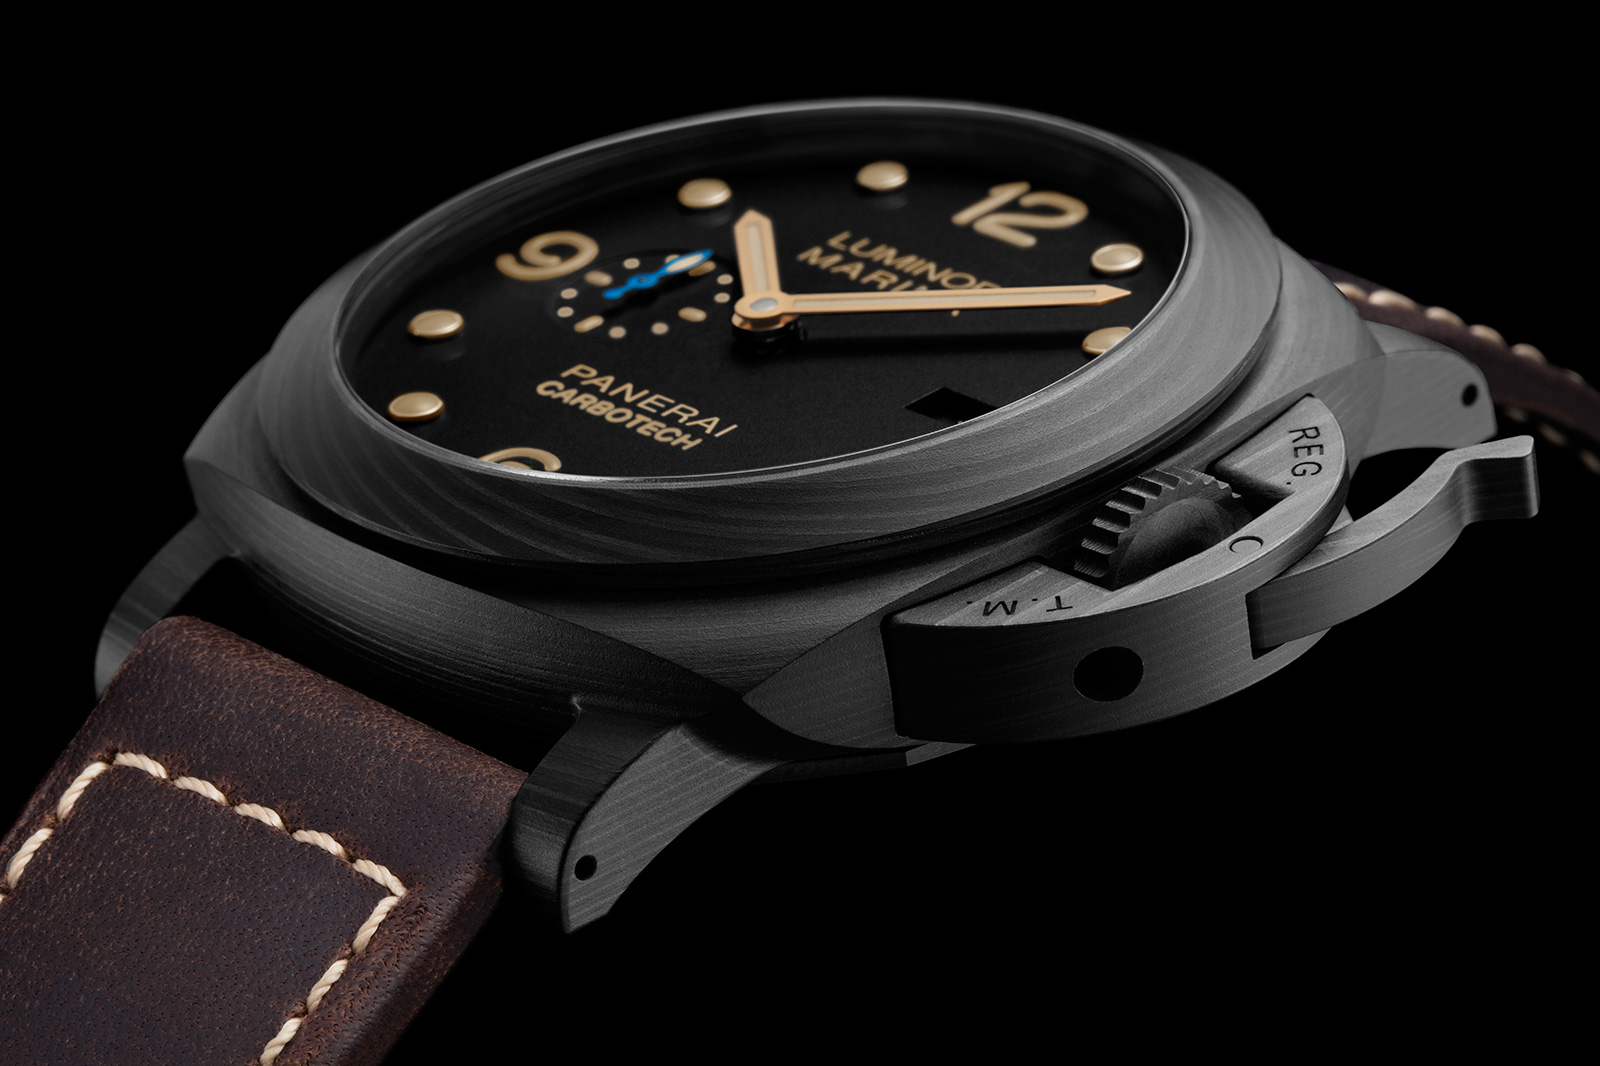 Panerai Luminor Marina 1950 Carbotech PAM661 - 1